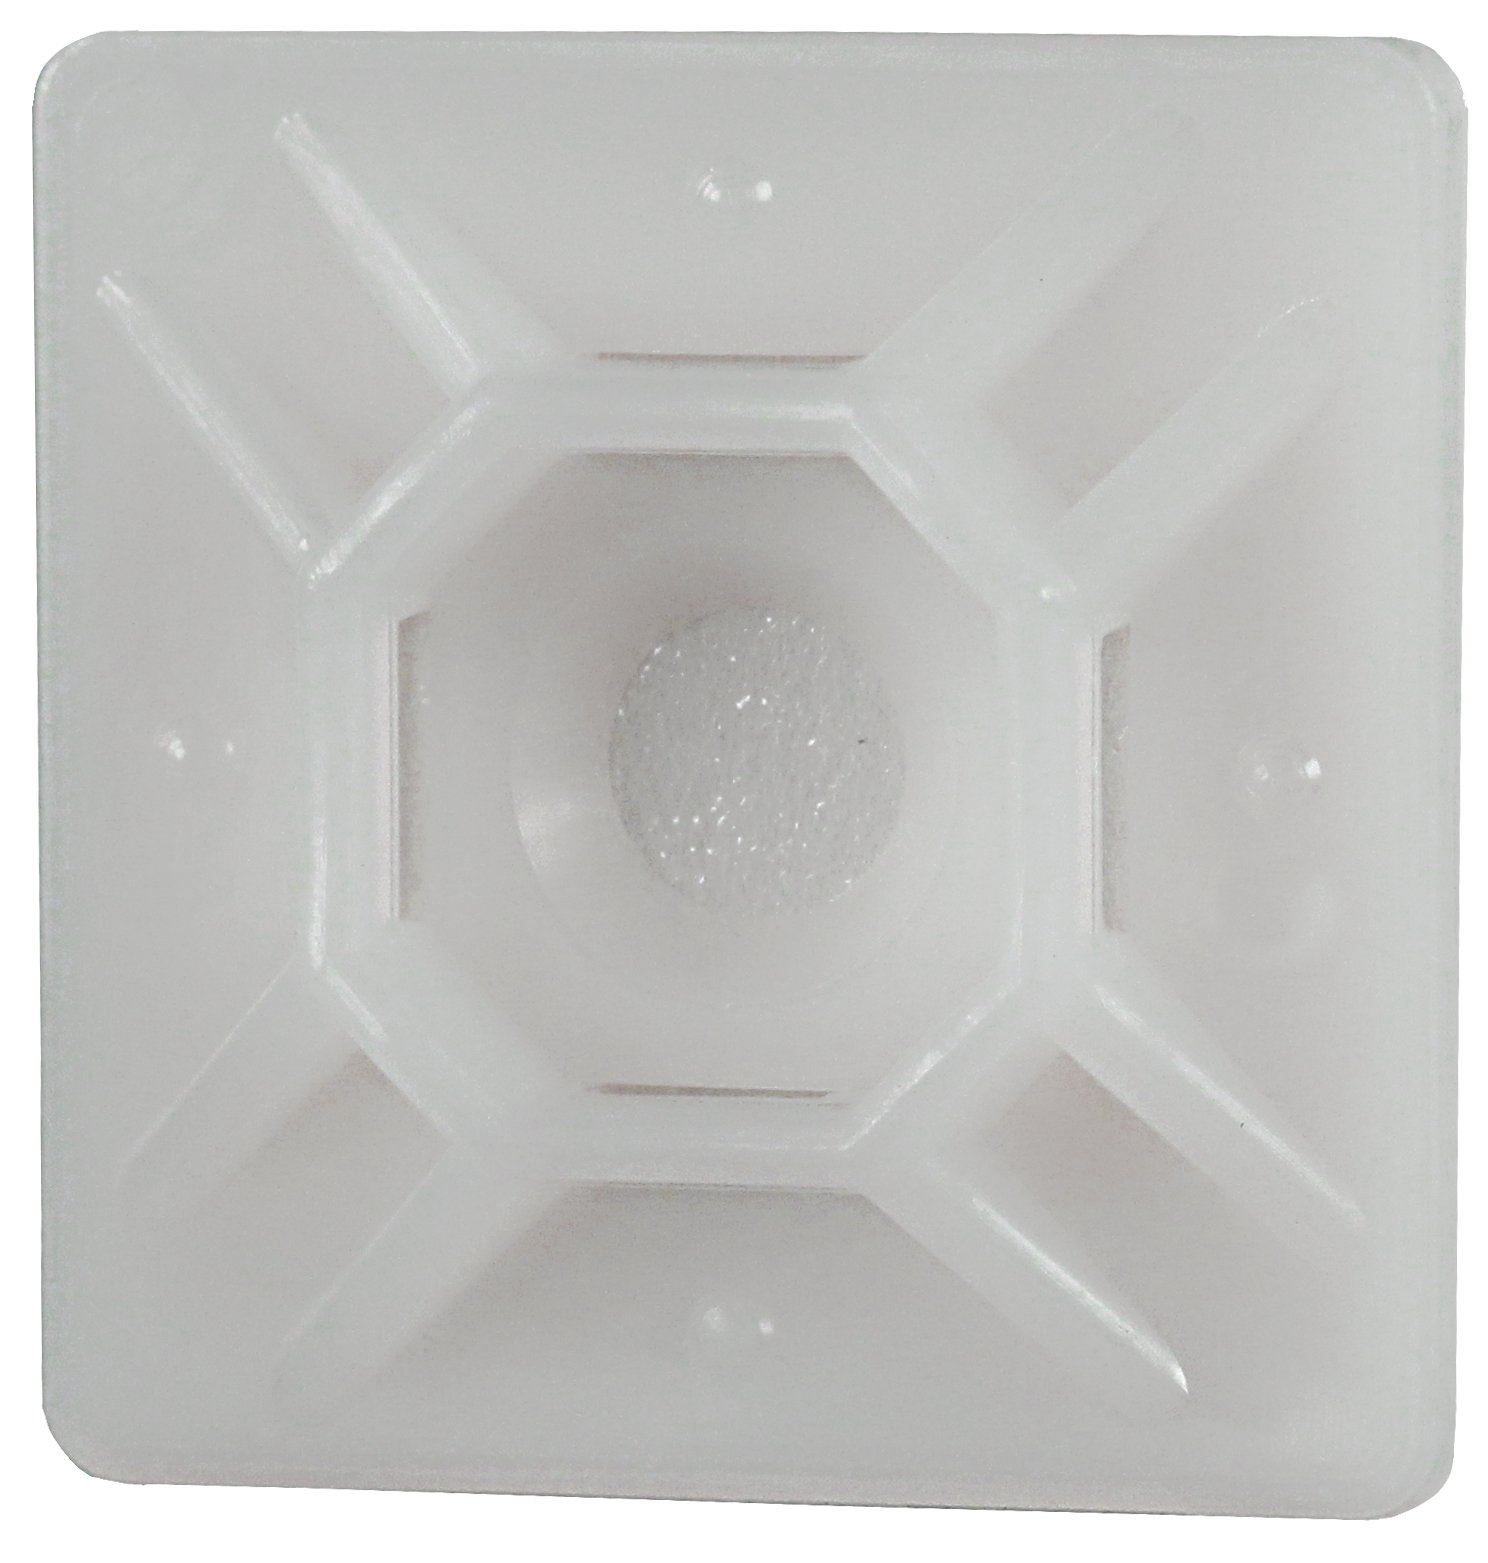 DOTTIE DT-100S 1IN-SQ MOUNTING BASE